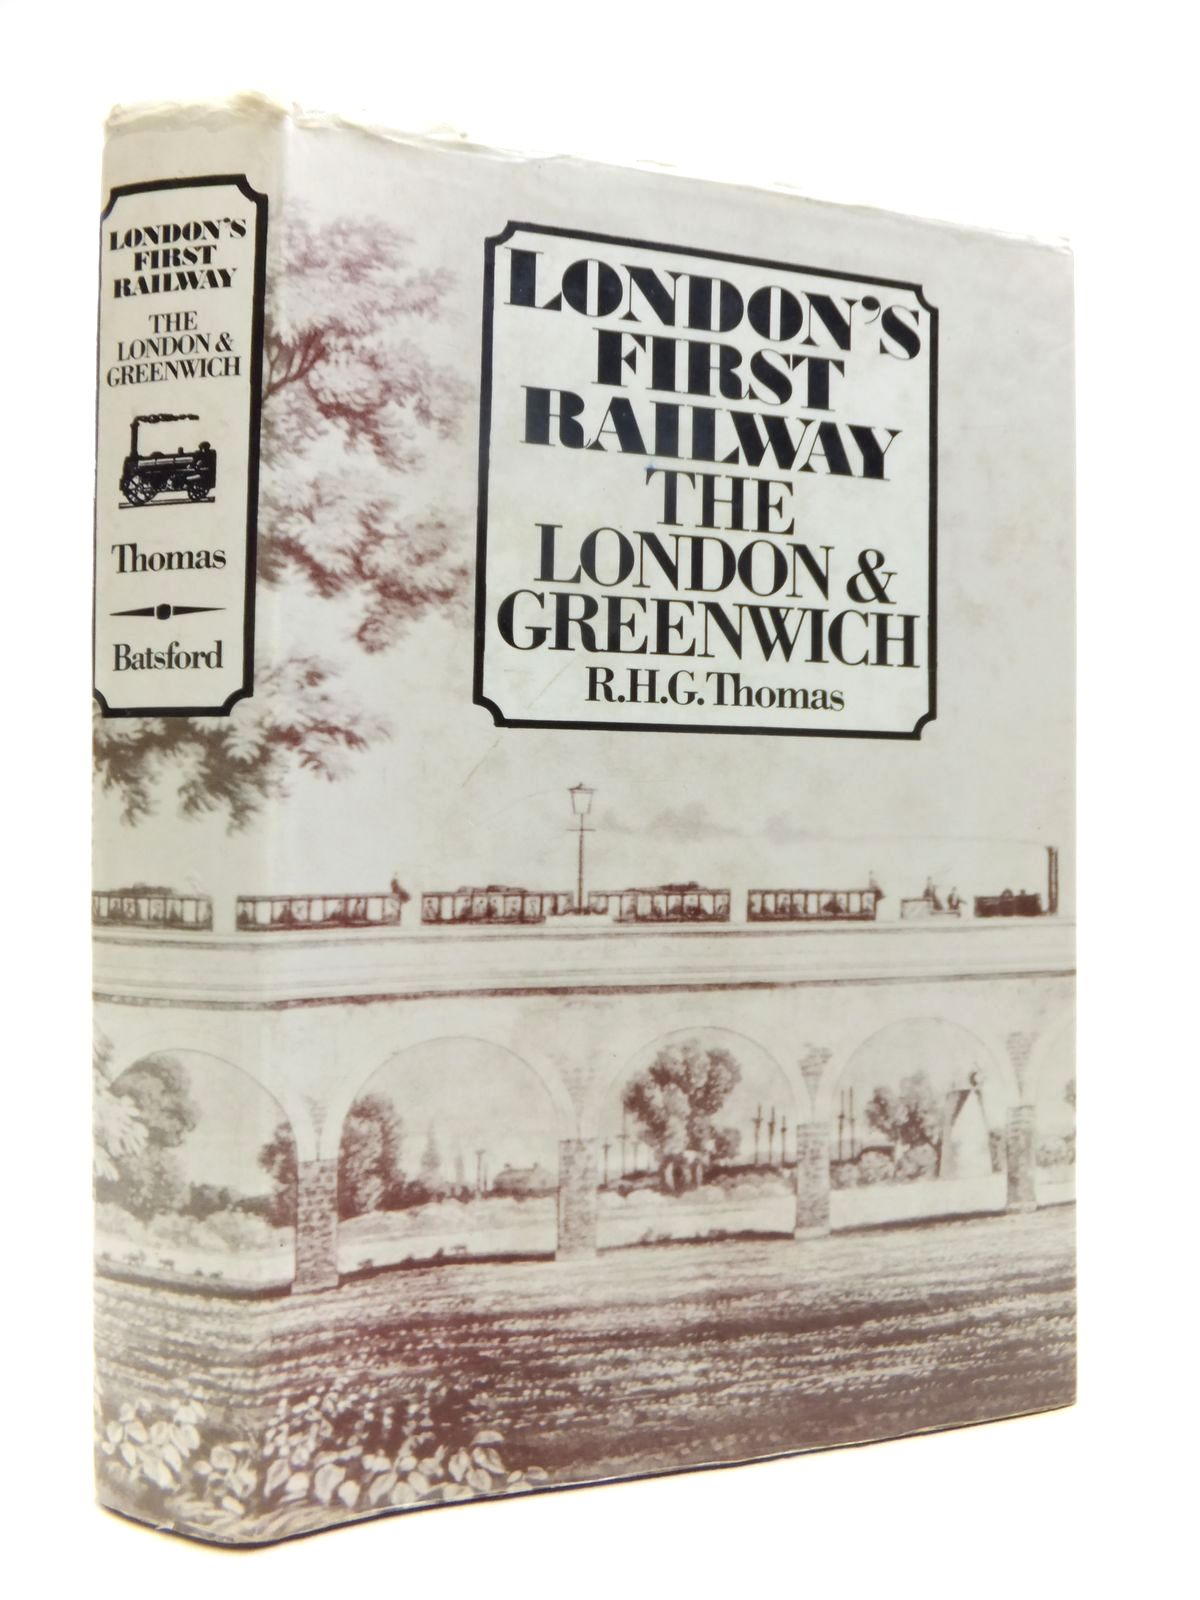 Photo of LONDON'S FIRST RAILWAY - THE LONDON & GREENWICH written by Thomas, R.H.G. published by B.T. Batsford Ltd. (STOCK CODE: 1812019)  for sale by Stella & Rose's Books